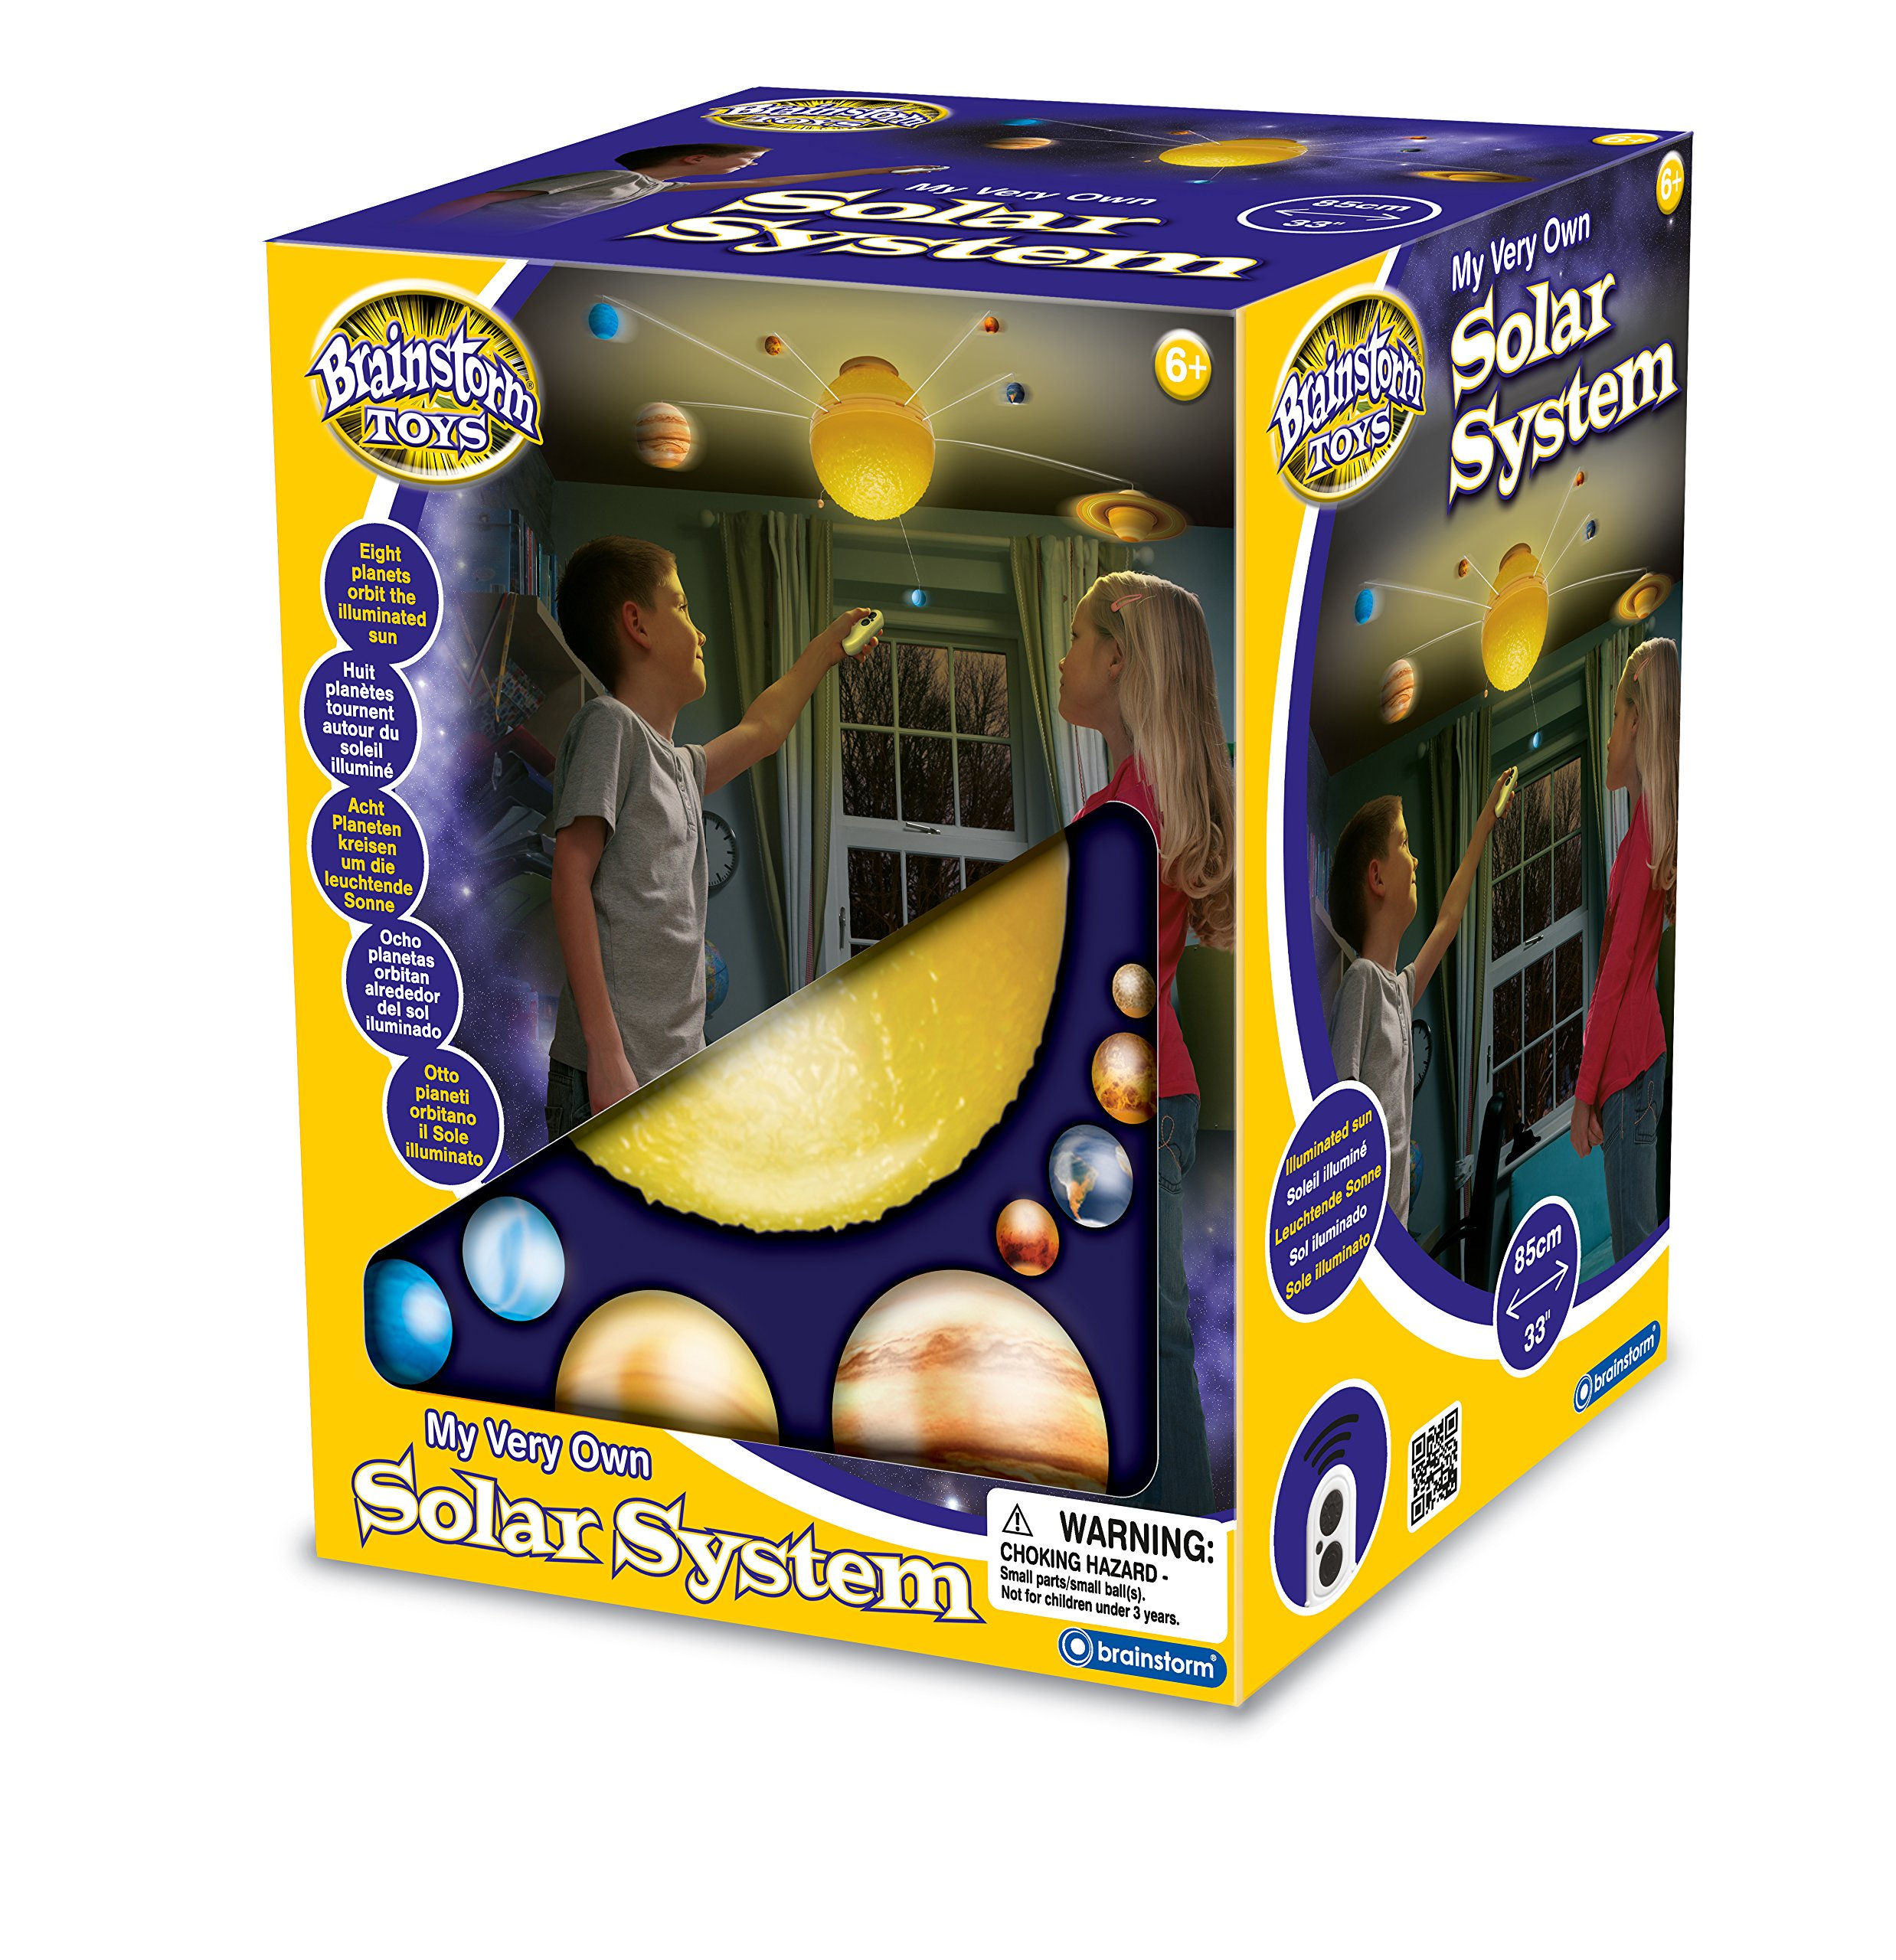 Brainstorm Toys E2002 RC Illuminated Solar System by Brainstorm Toys